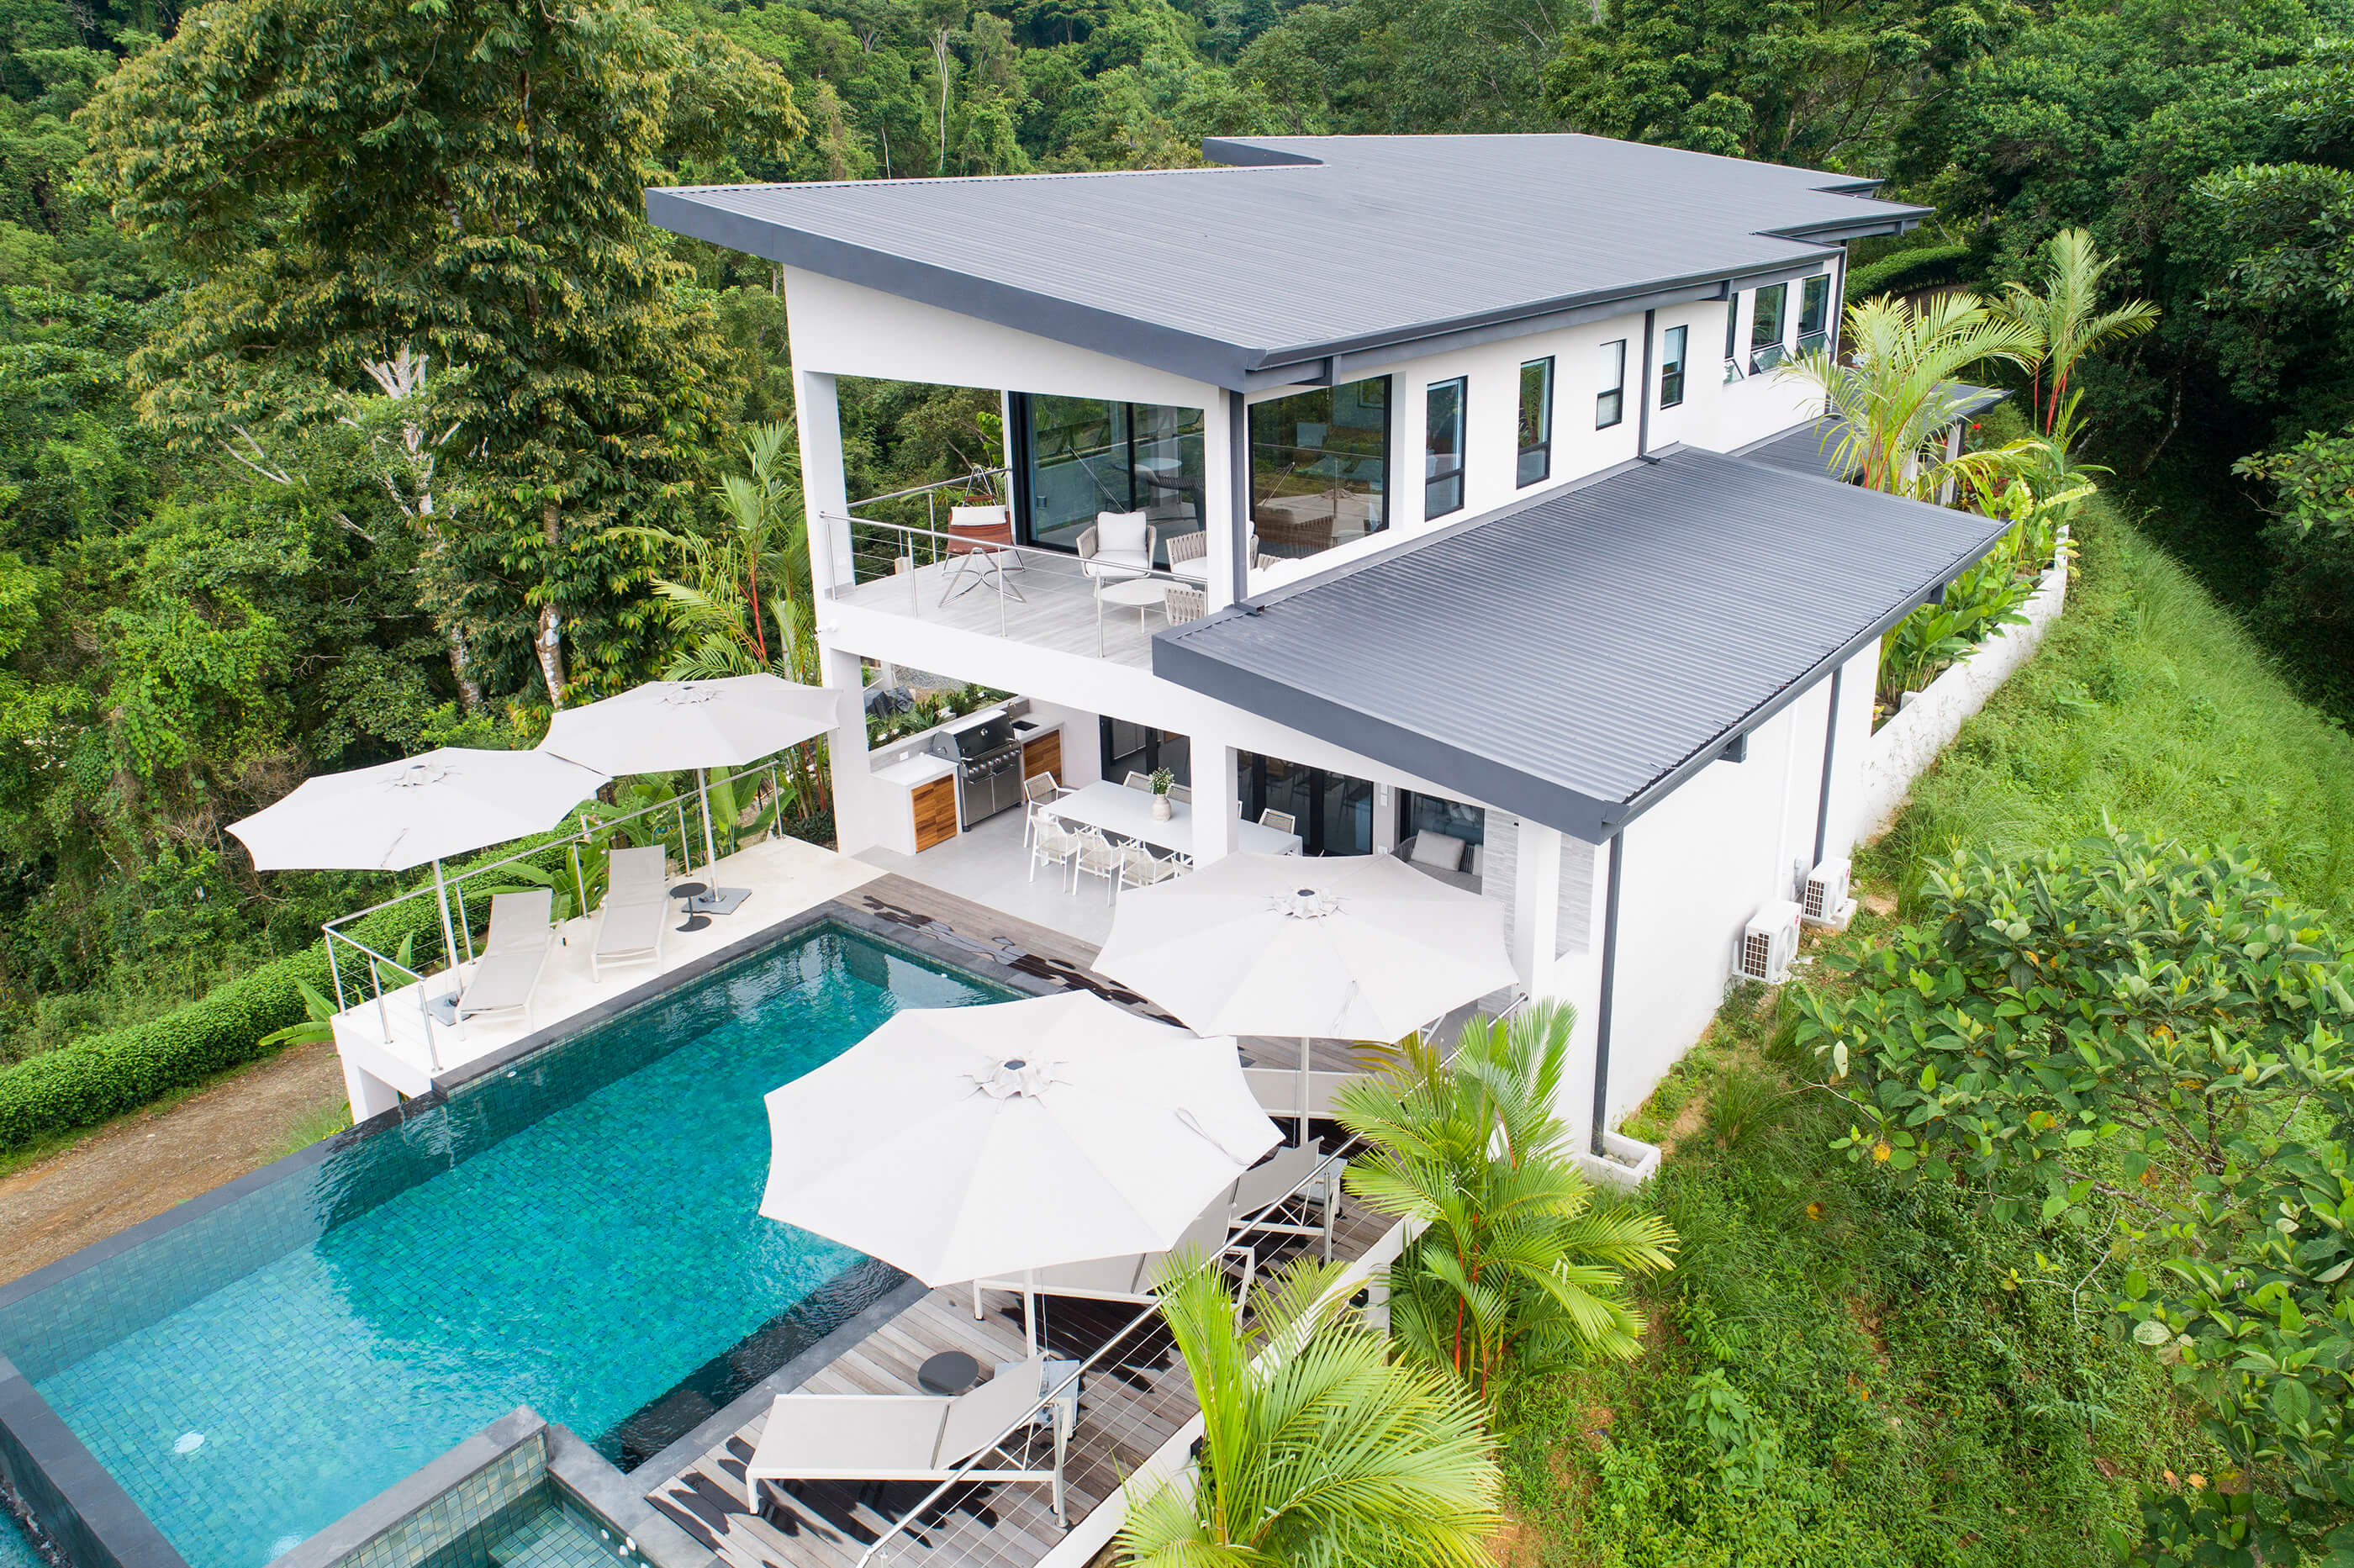 LUXURIOUS FOUR BEDROOM ESTATE WITH INFINITY POOL, PRIVACY AND OCEAN VIEW!!!